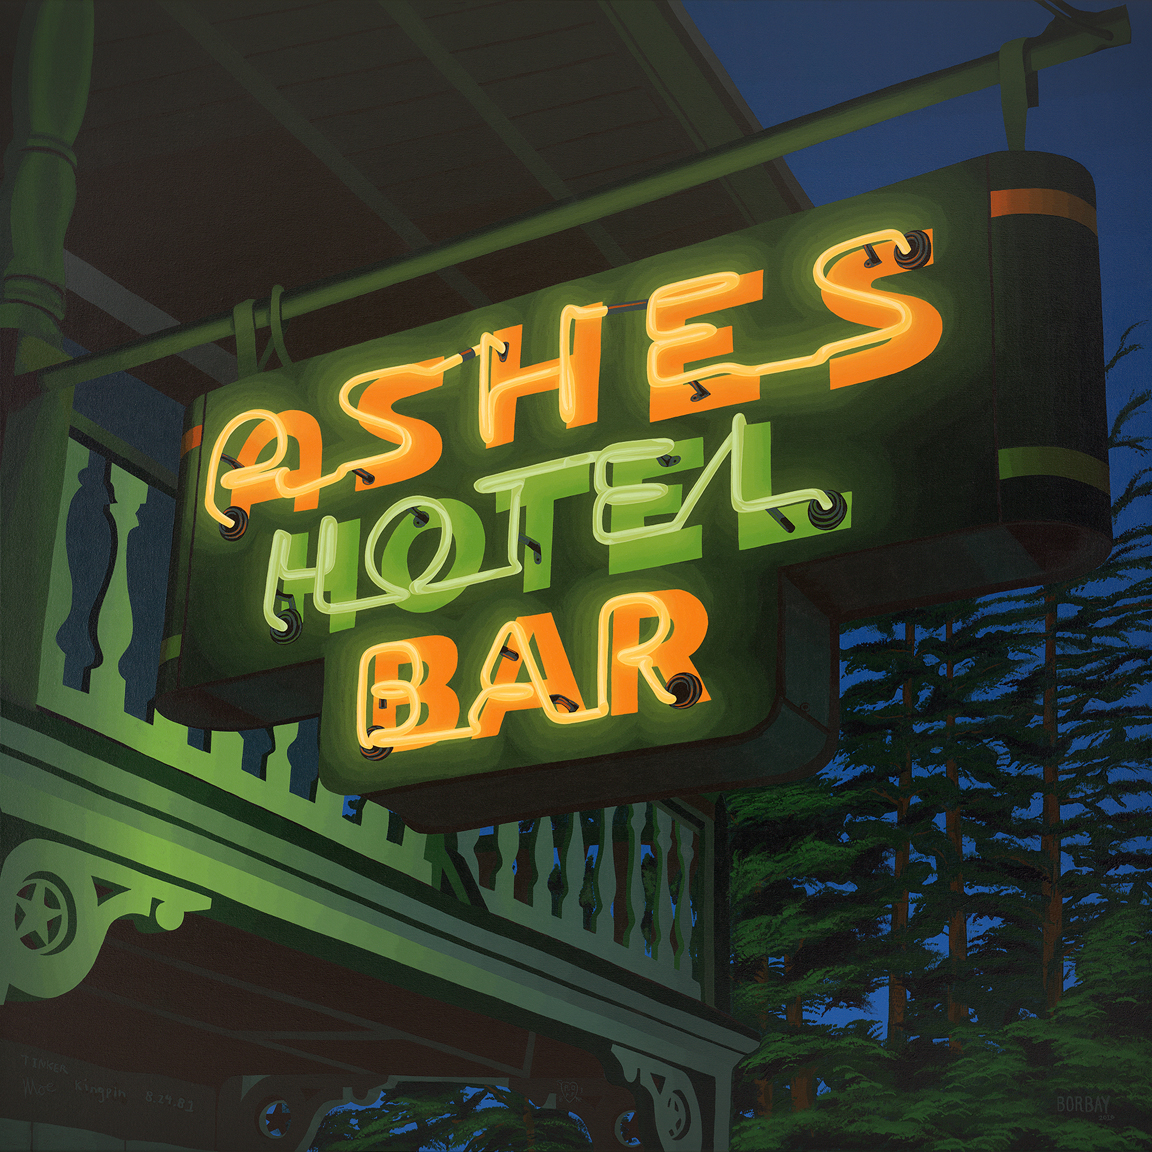 Ashes Hotel Bar Neon Painting by Borbay